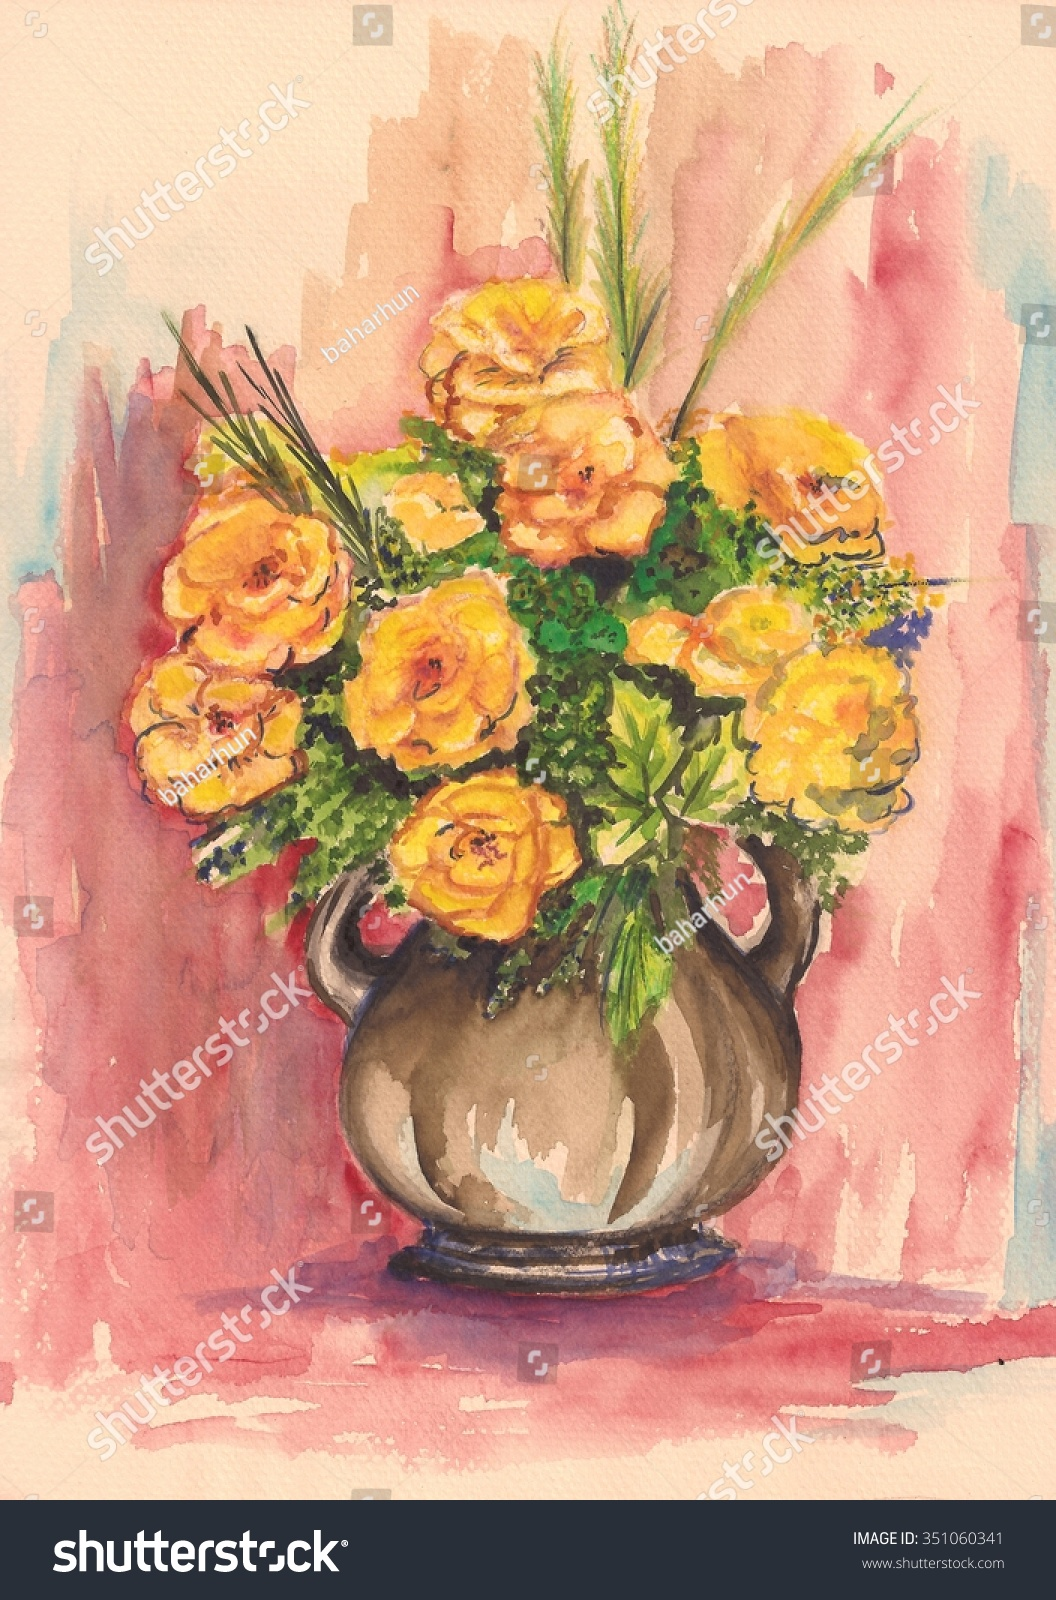 Watercolor Rose Bouquet In Vase Yellow Flowers Handmade Painting Hand Drawn  Art